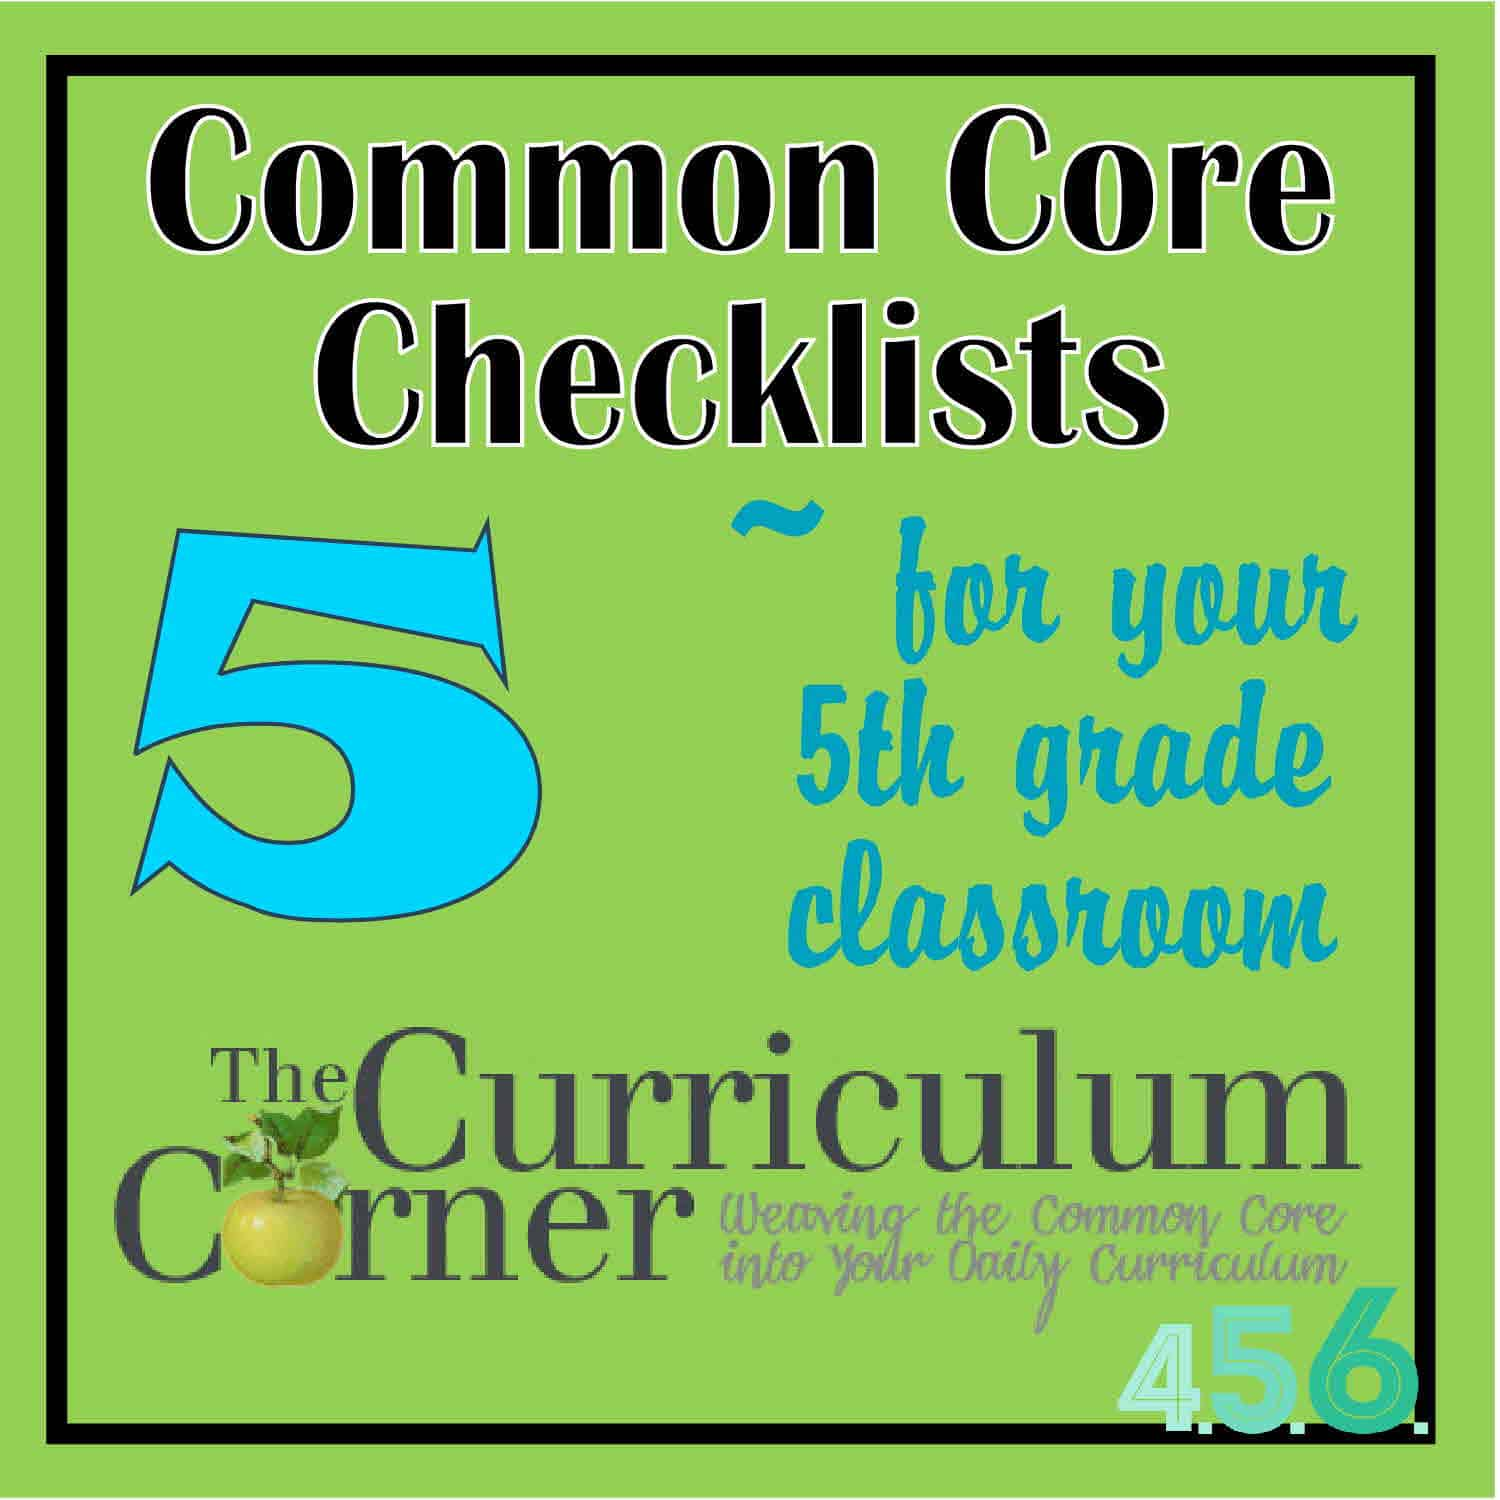 4th 5th And 6th Grade Common Core Checklists By The